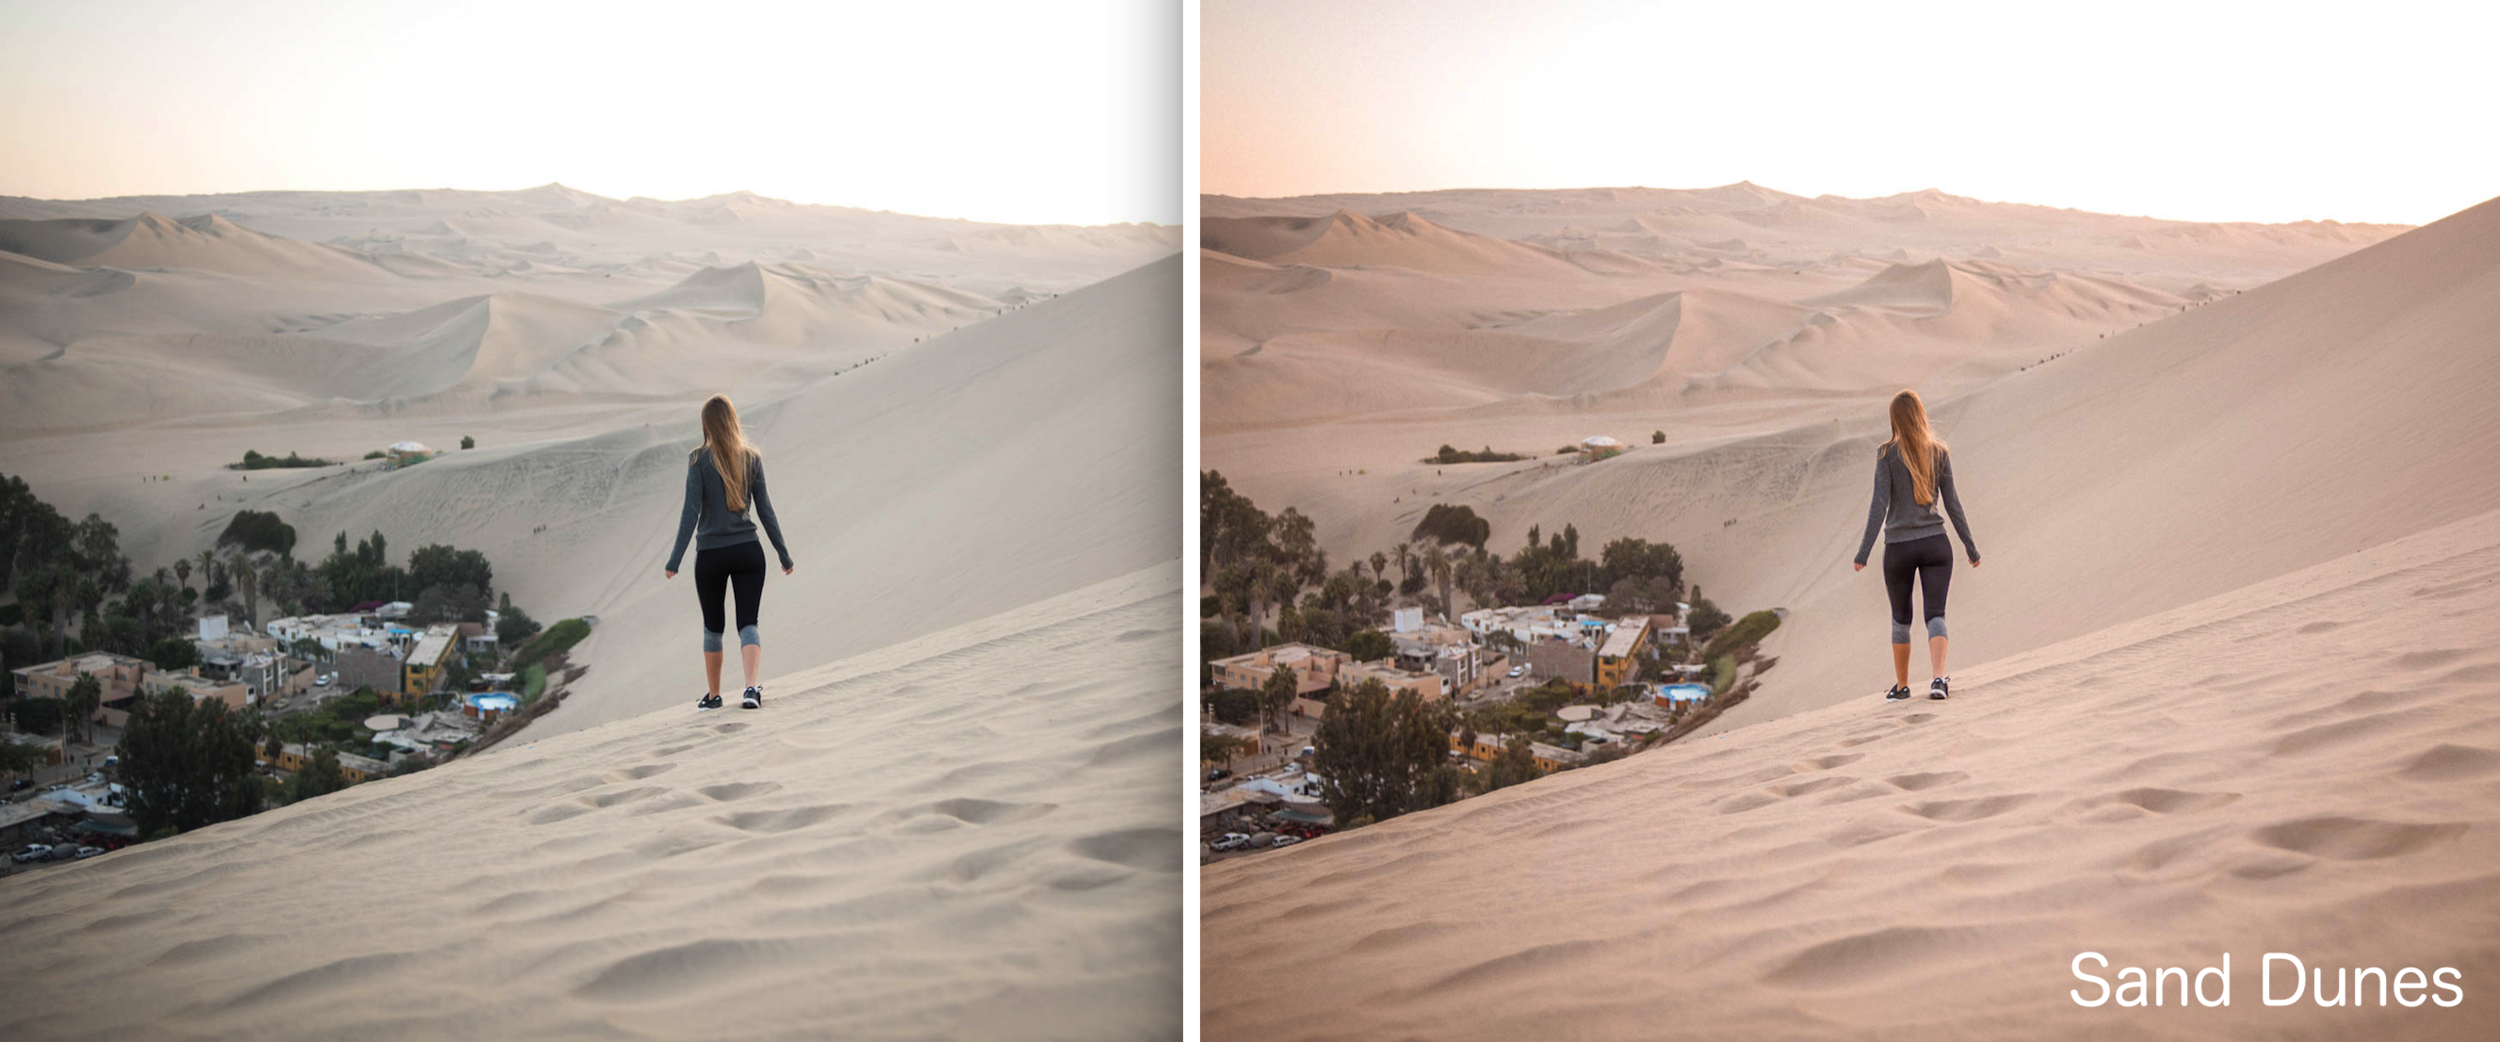 Sand Dunes.png